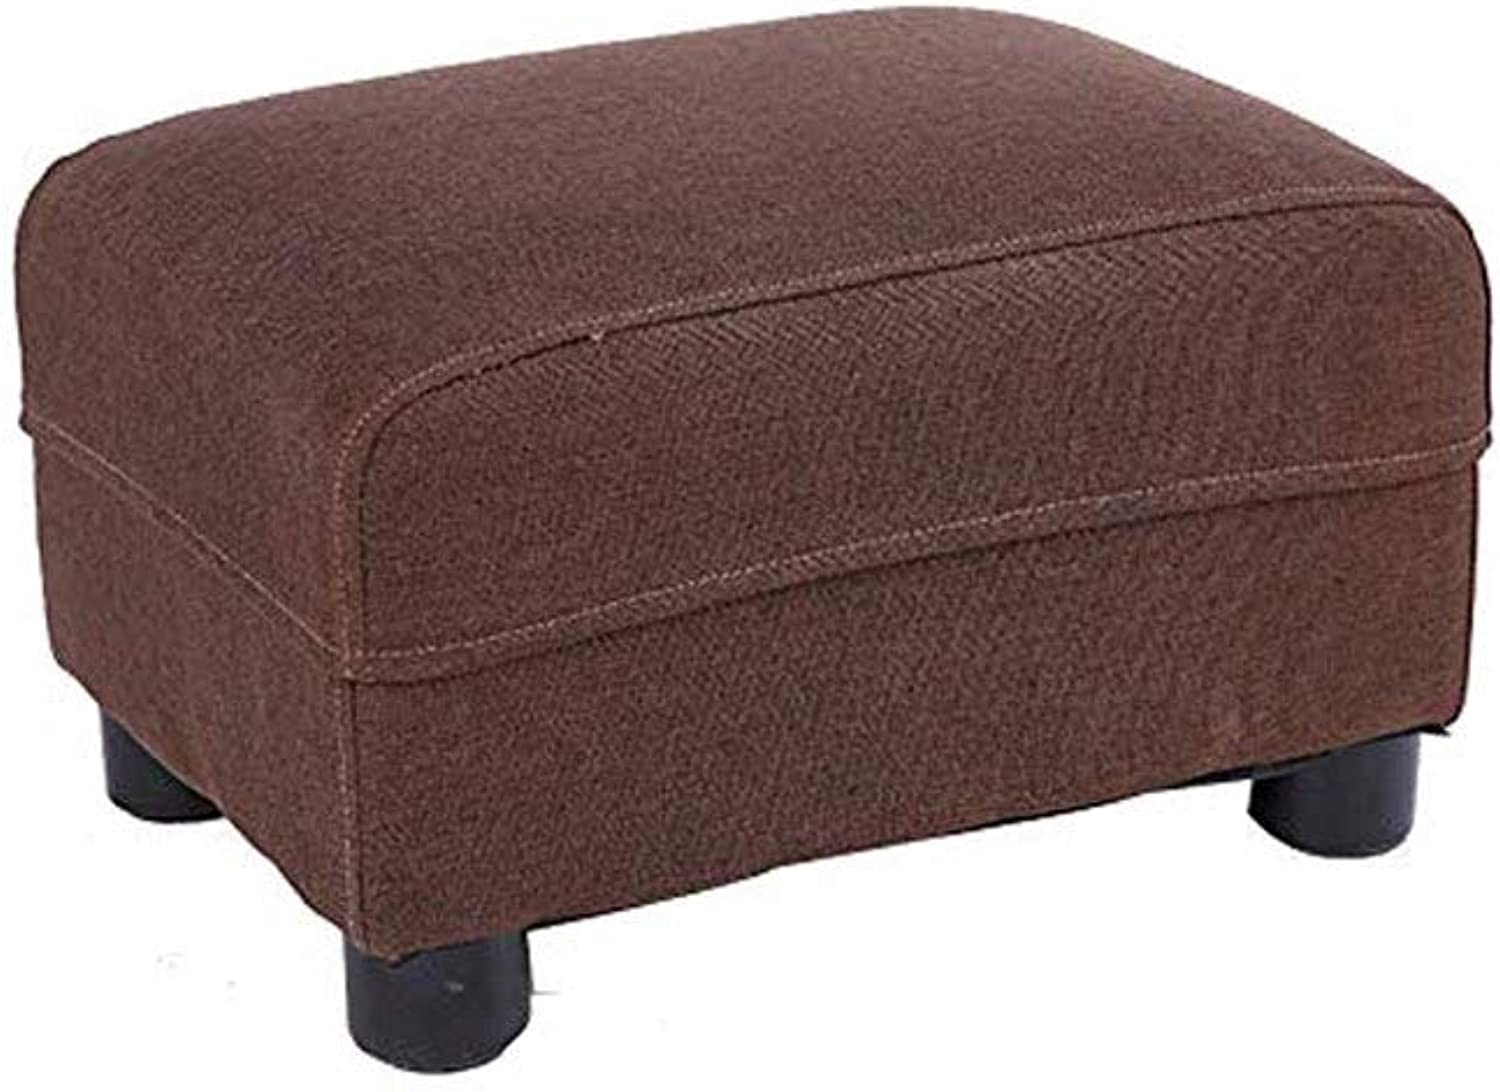 Footstool, Padded Footstool Solid Wood shoes Bench Seat Detachable Linen Cloth Small Stool (color   D)